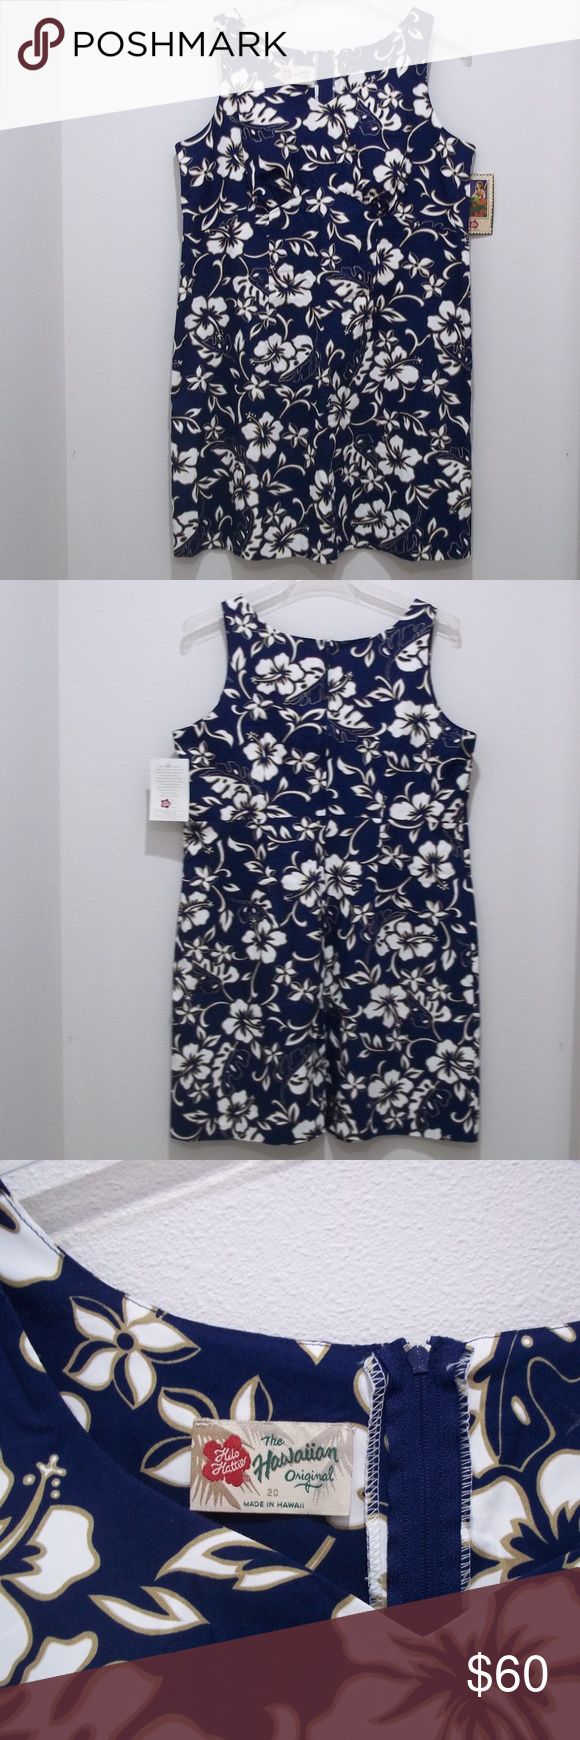 """Hilo Hatties Dress Hawaiian Blue White Hibiscus Hilo Hatties Dress Womens Size 20 Hawaiian Blue White Hibiscus Plumeria  #1839  This dress is new with tags attached.   Please check the measurements, not all sizes are created equally.  BRAND: Hilo Hattie SIZE: 20  COLOR: Multi-Colored  MATERIAL: Cotton   MEASUREMENTS-  Pit-to-Pit: 21.5""""  Length: 38""""  Hips: 46""""   1801/10 Hilo Hattie Dresses"""